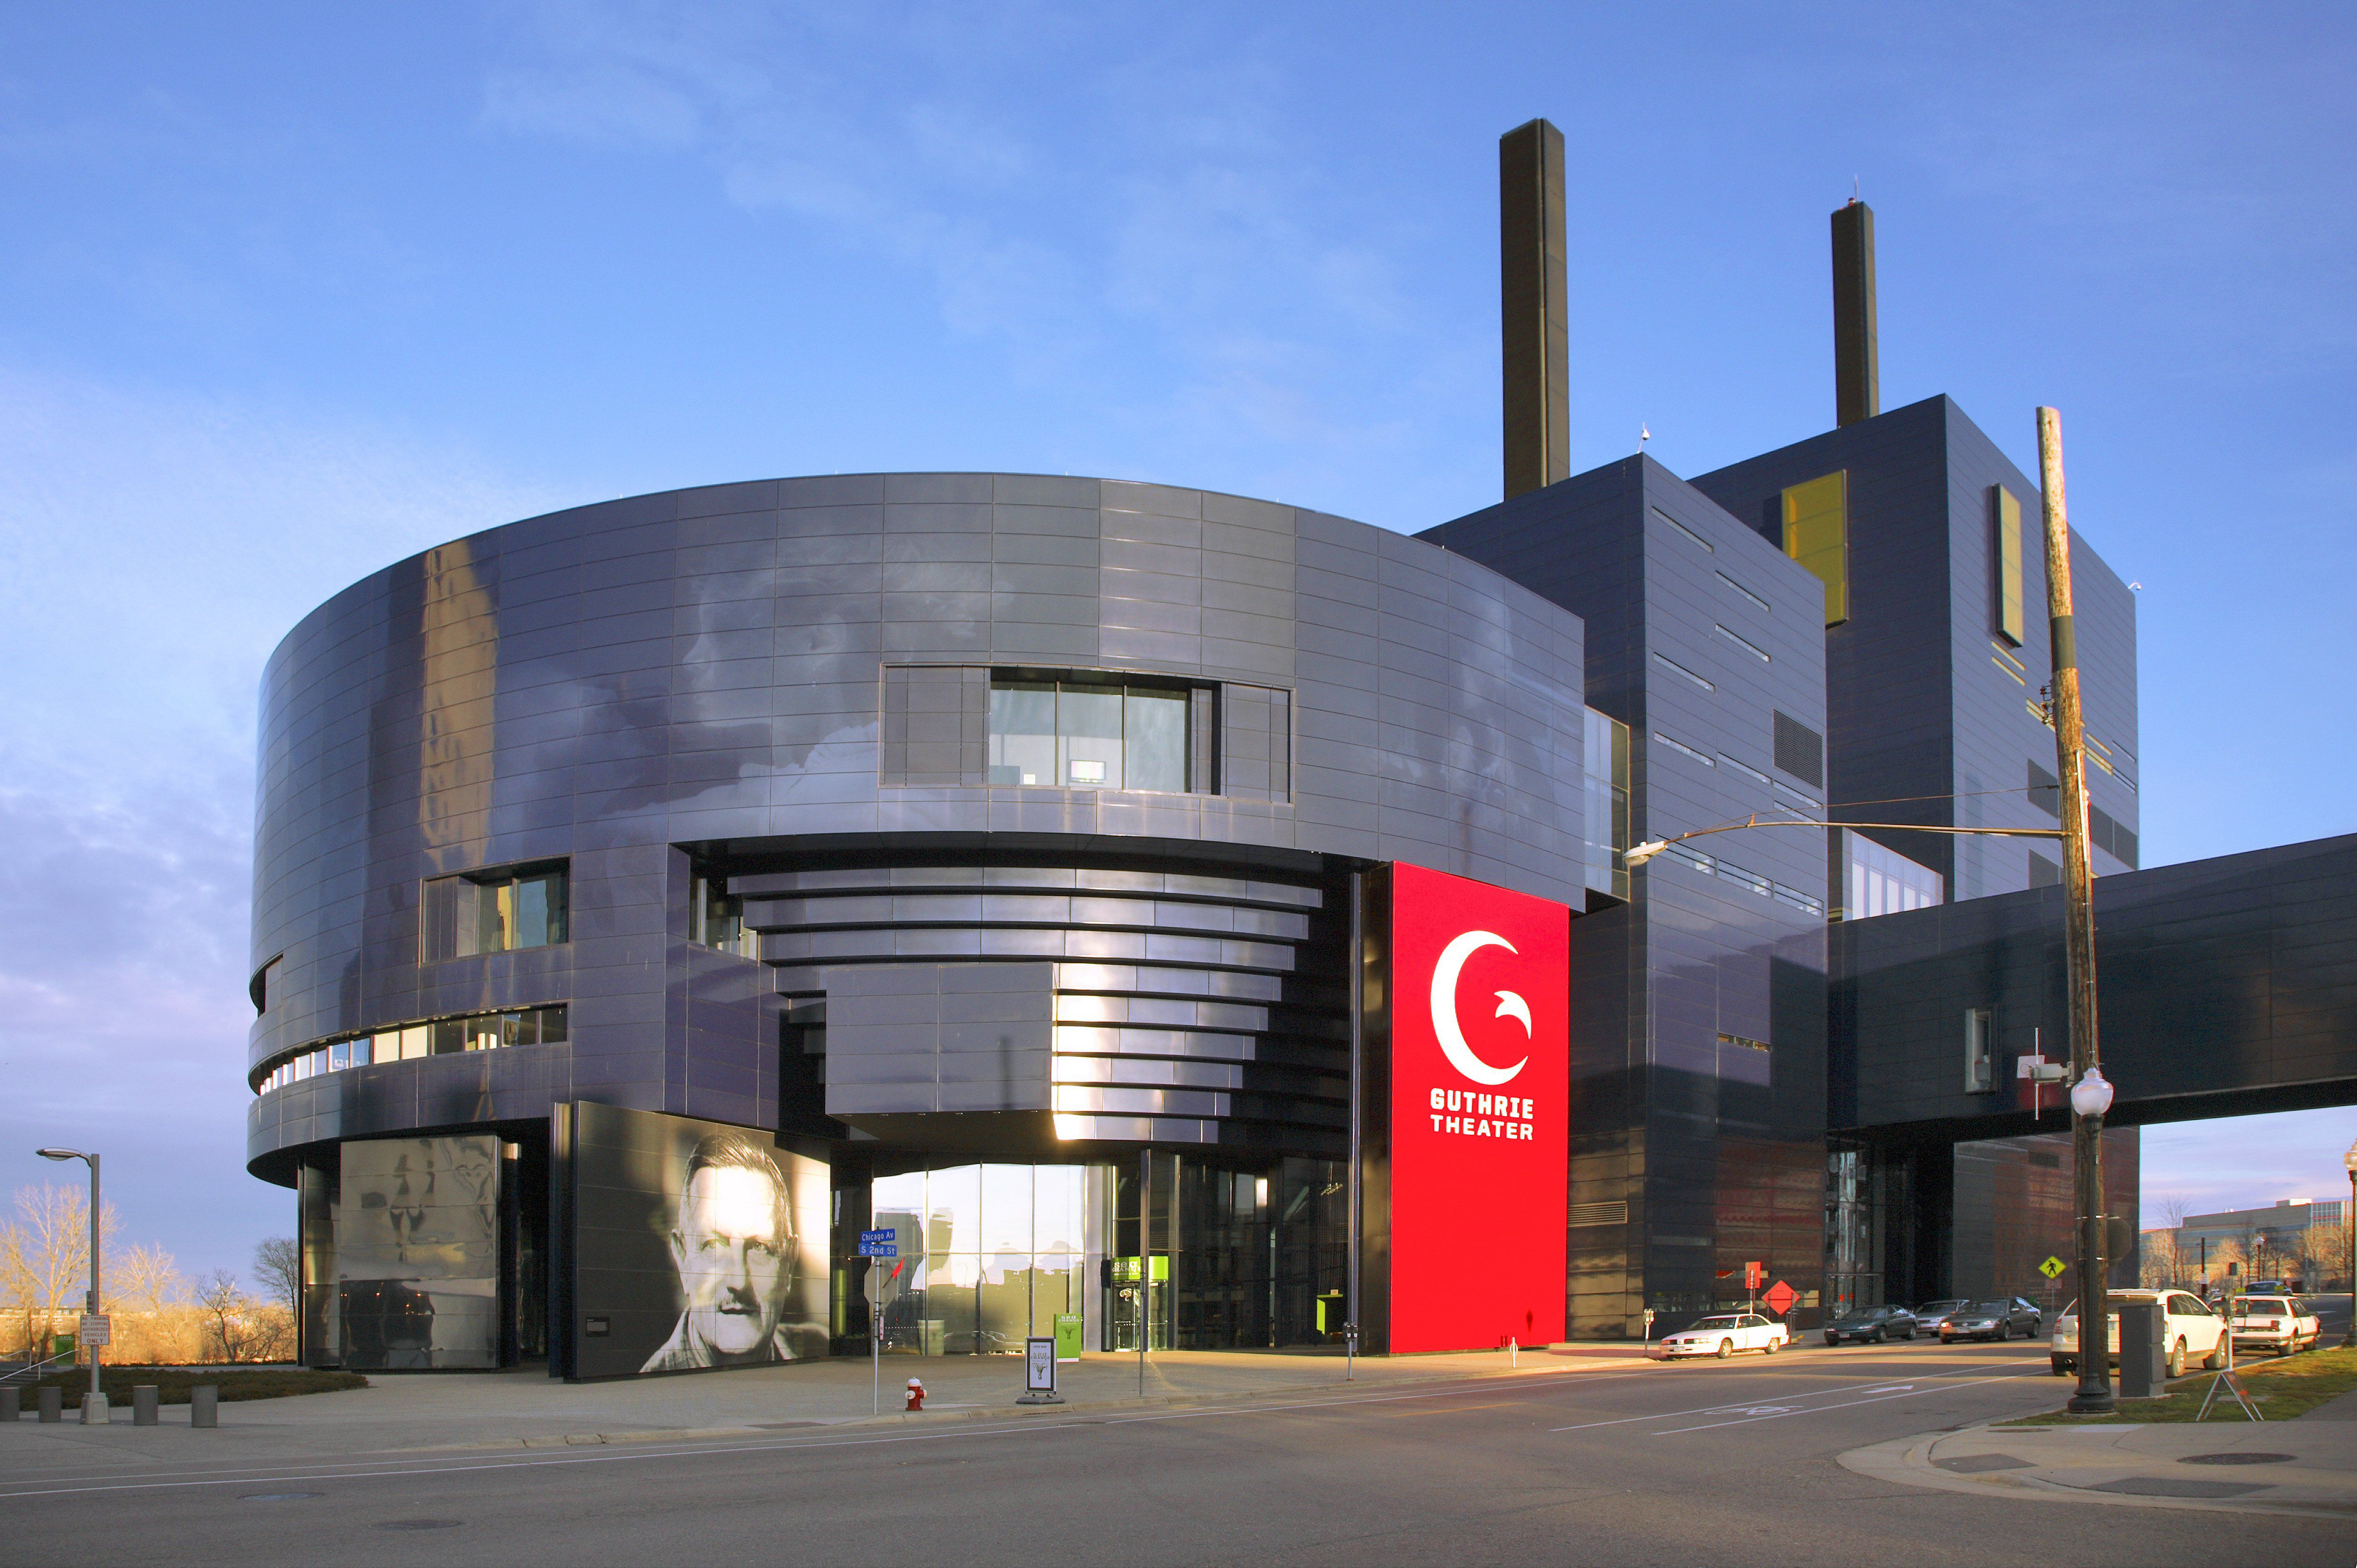 grey-blue roundish shaped industrial-looking building